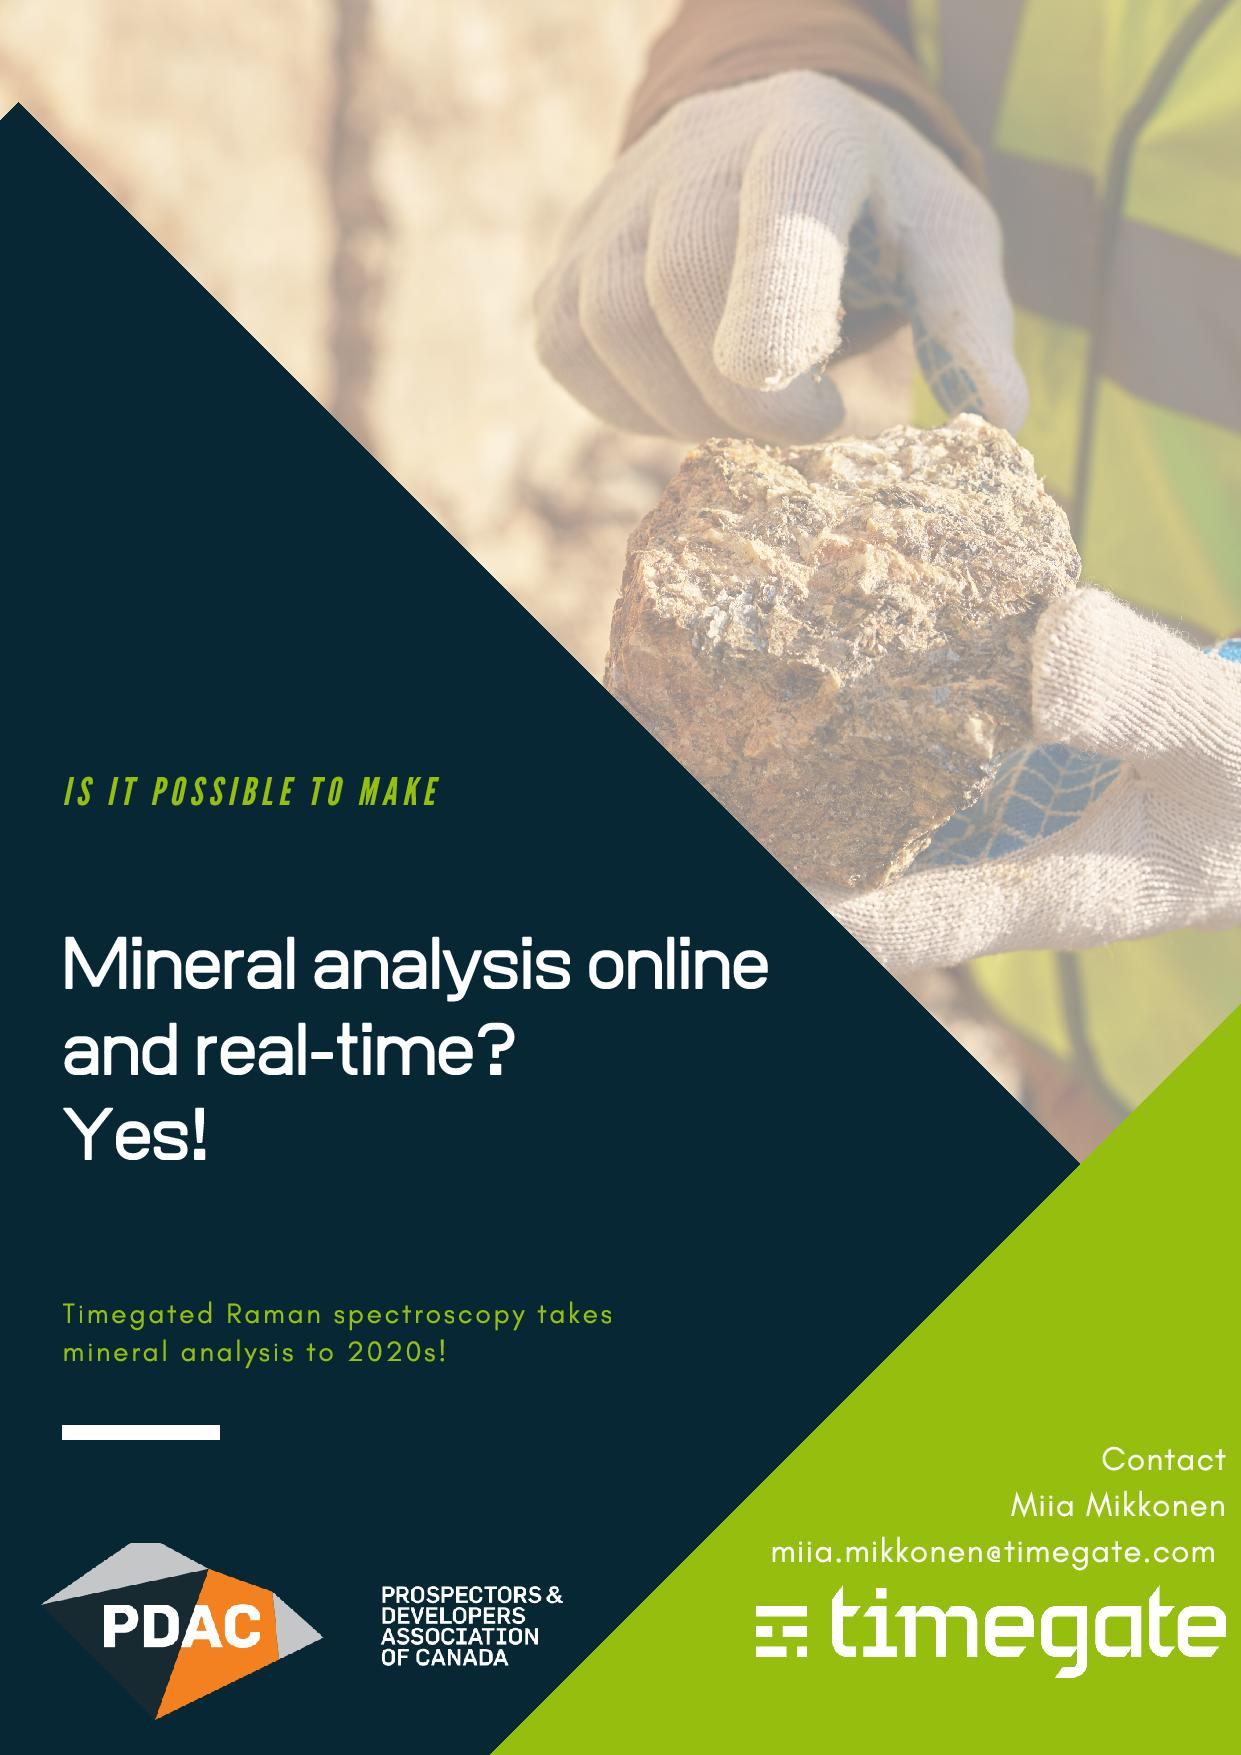 Mineral analysis online and real-time